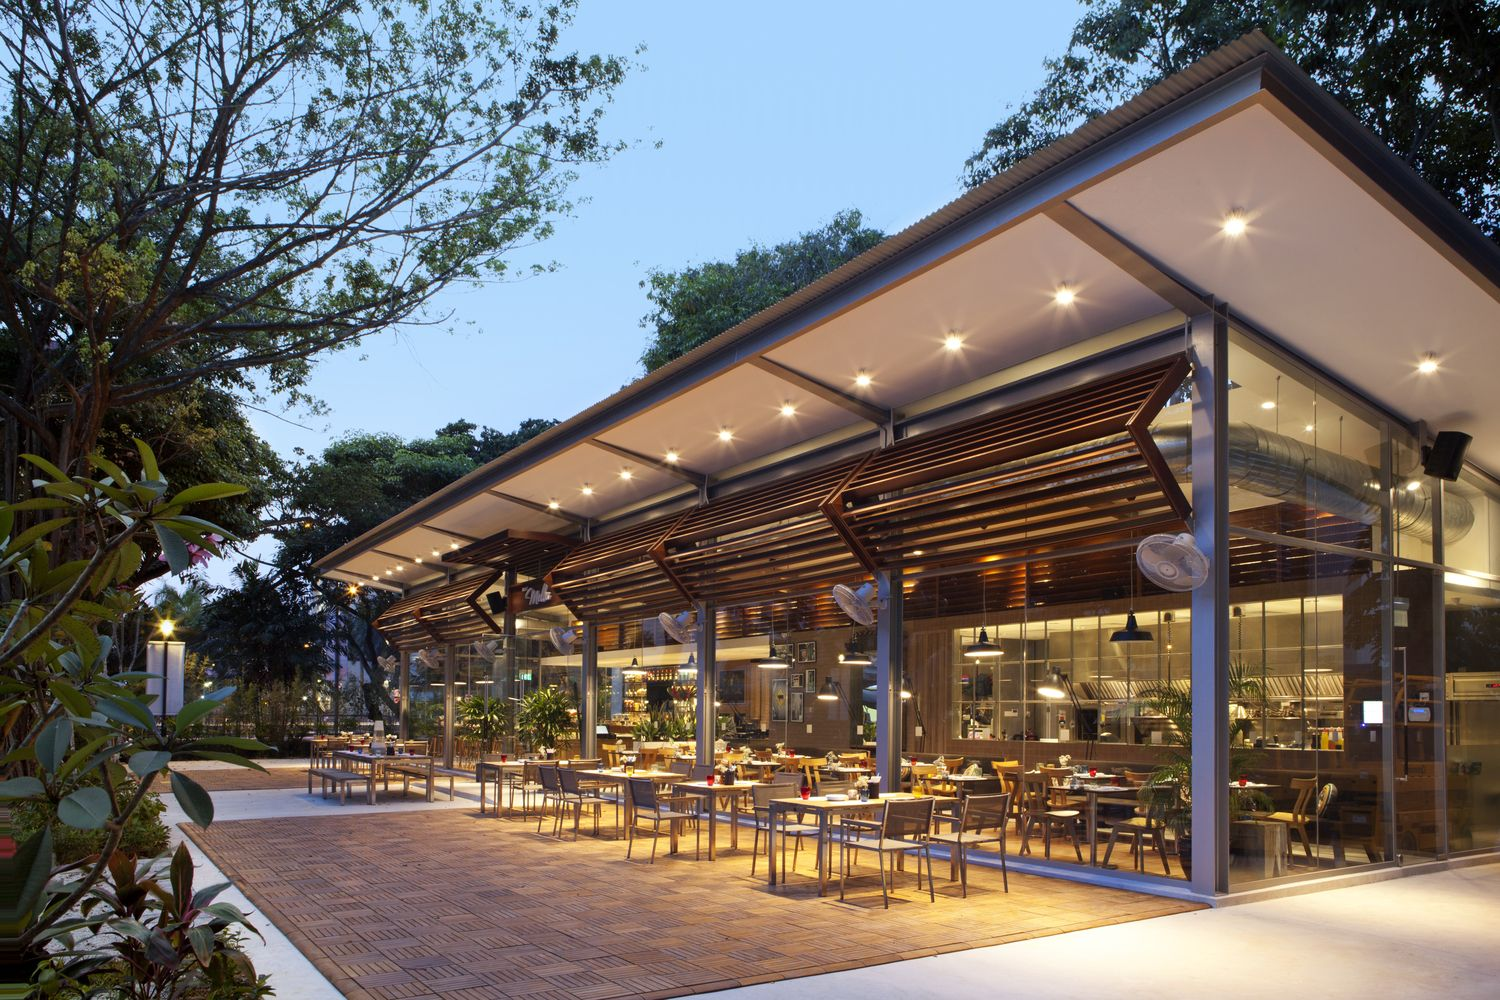 cafe melba singapore - buscar con google | restaurants singapore